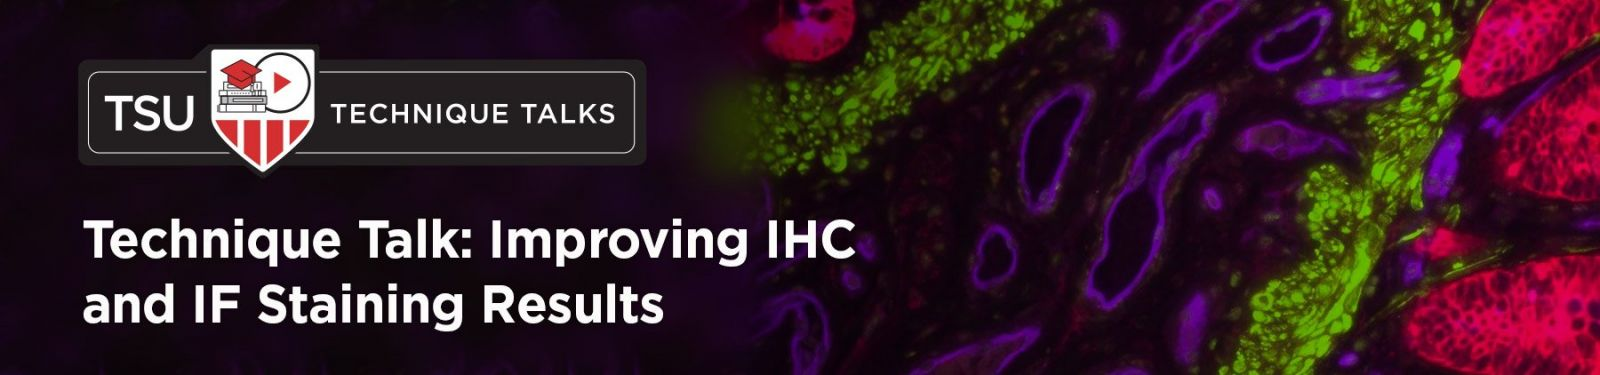 Technique Talk: Improving IHC and IF Staning Results